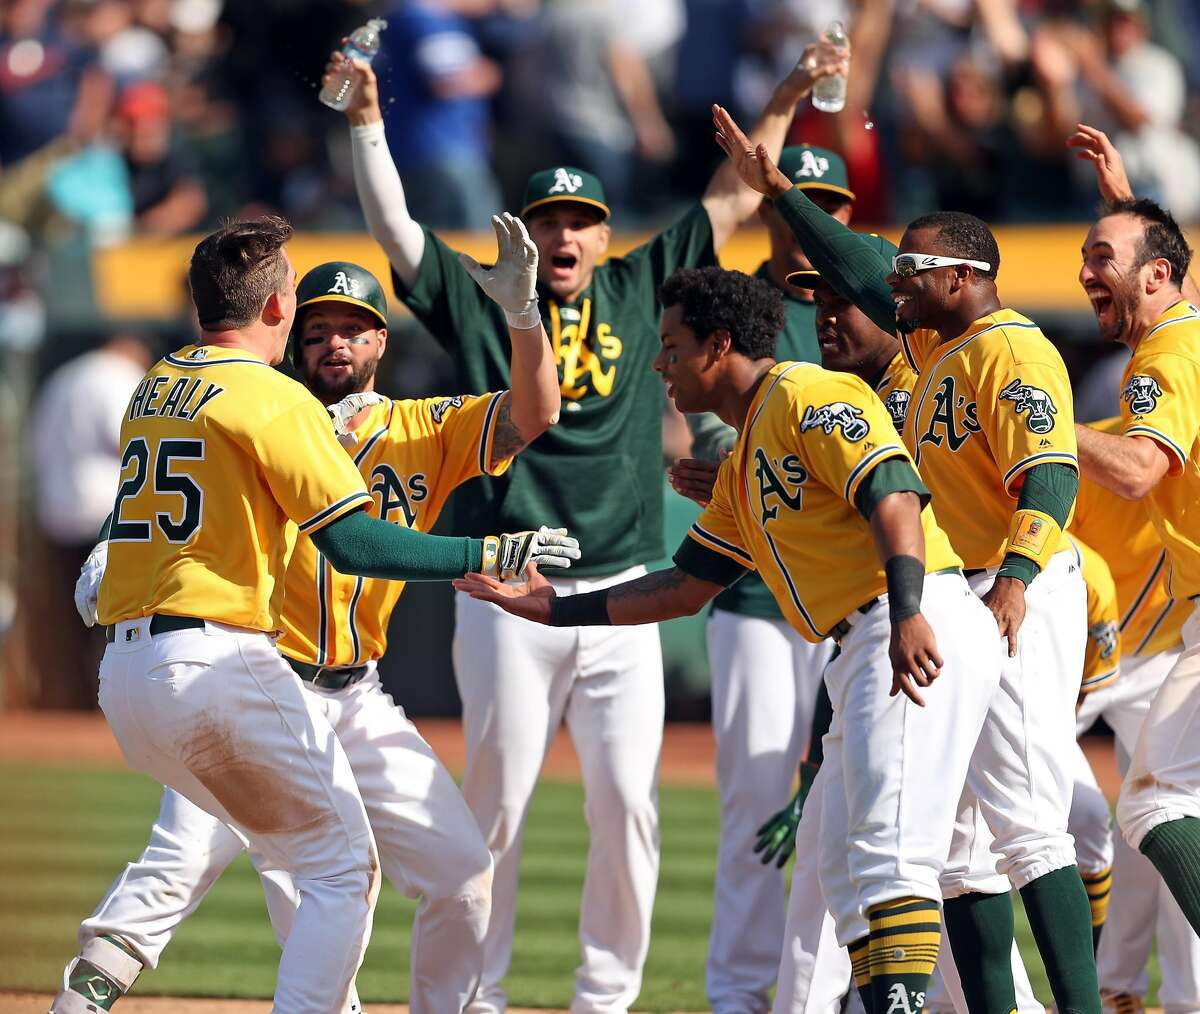 Oakland Athletics' Ryon Healy is met at home plate after hitting a 2-run home run giving A's an 8-6 win over Detroit Tigers in MLB game at Oakland Coliseum in Oakland, Calif., on Sunday, May 7, 2017.